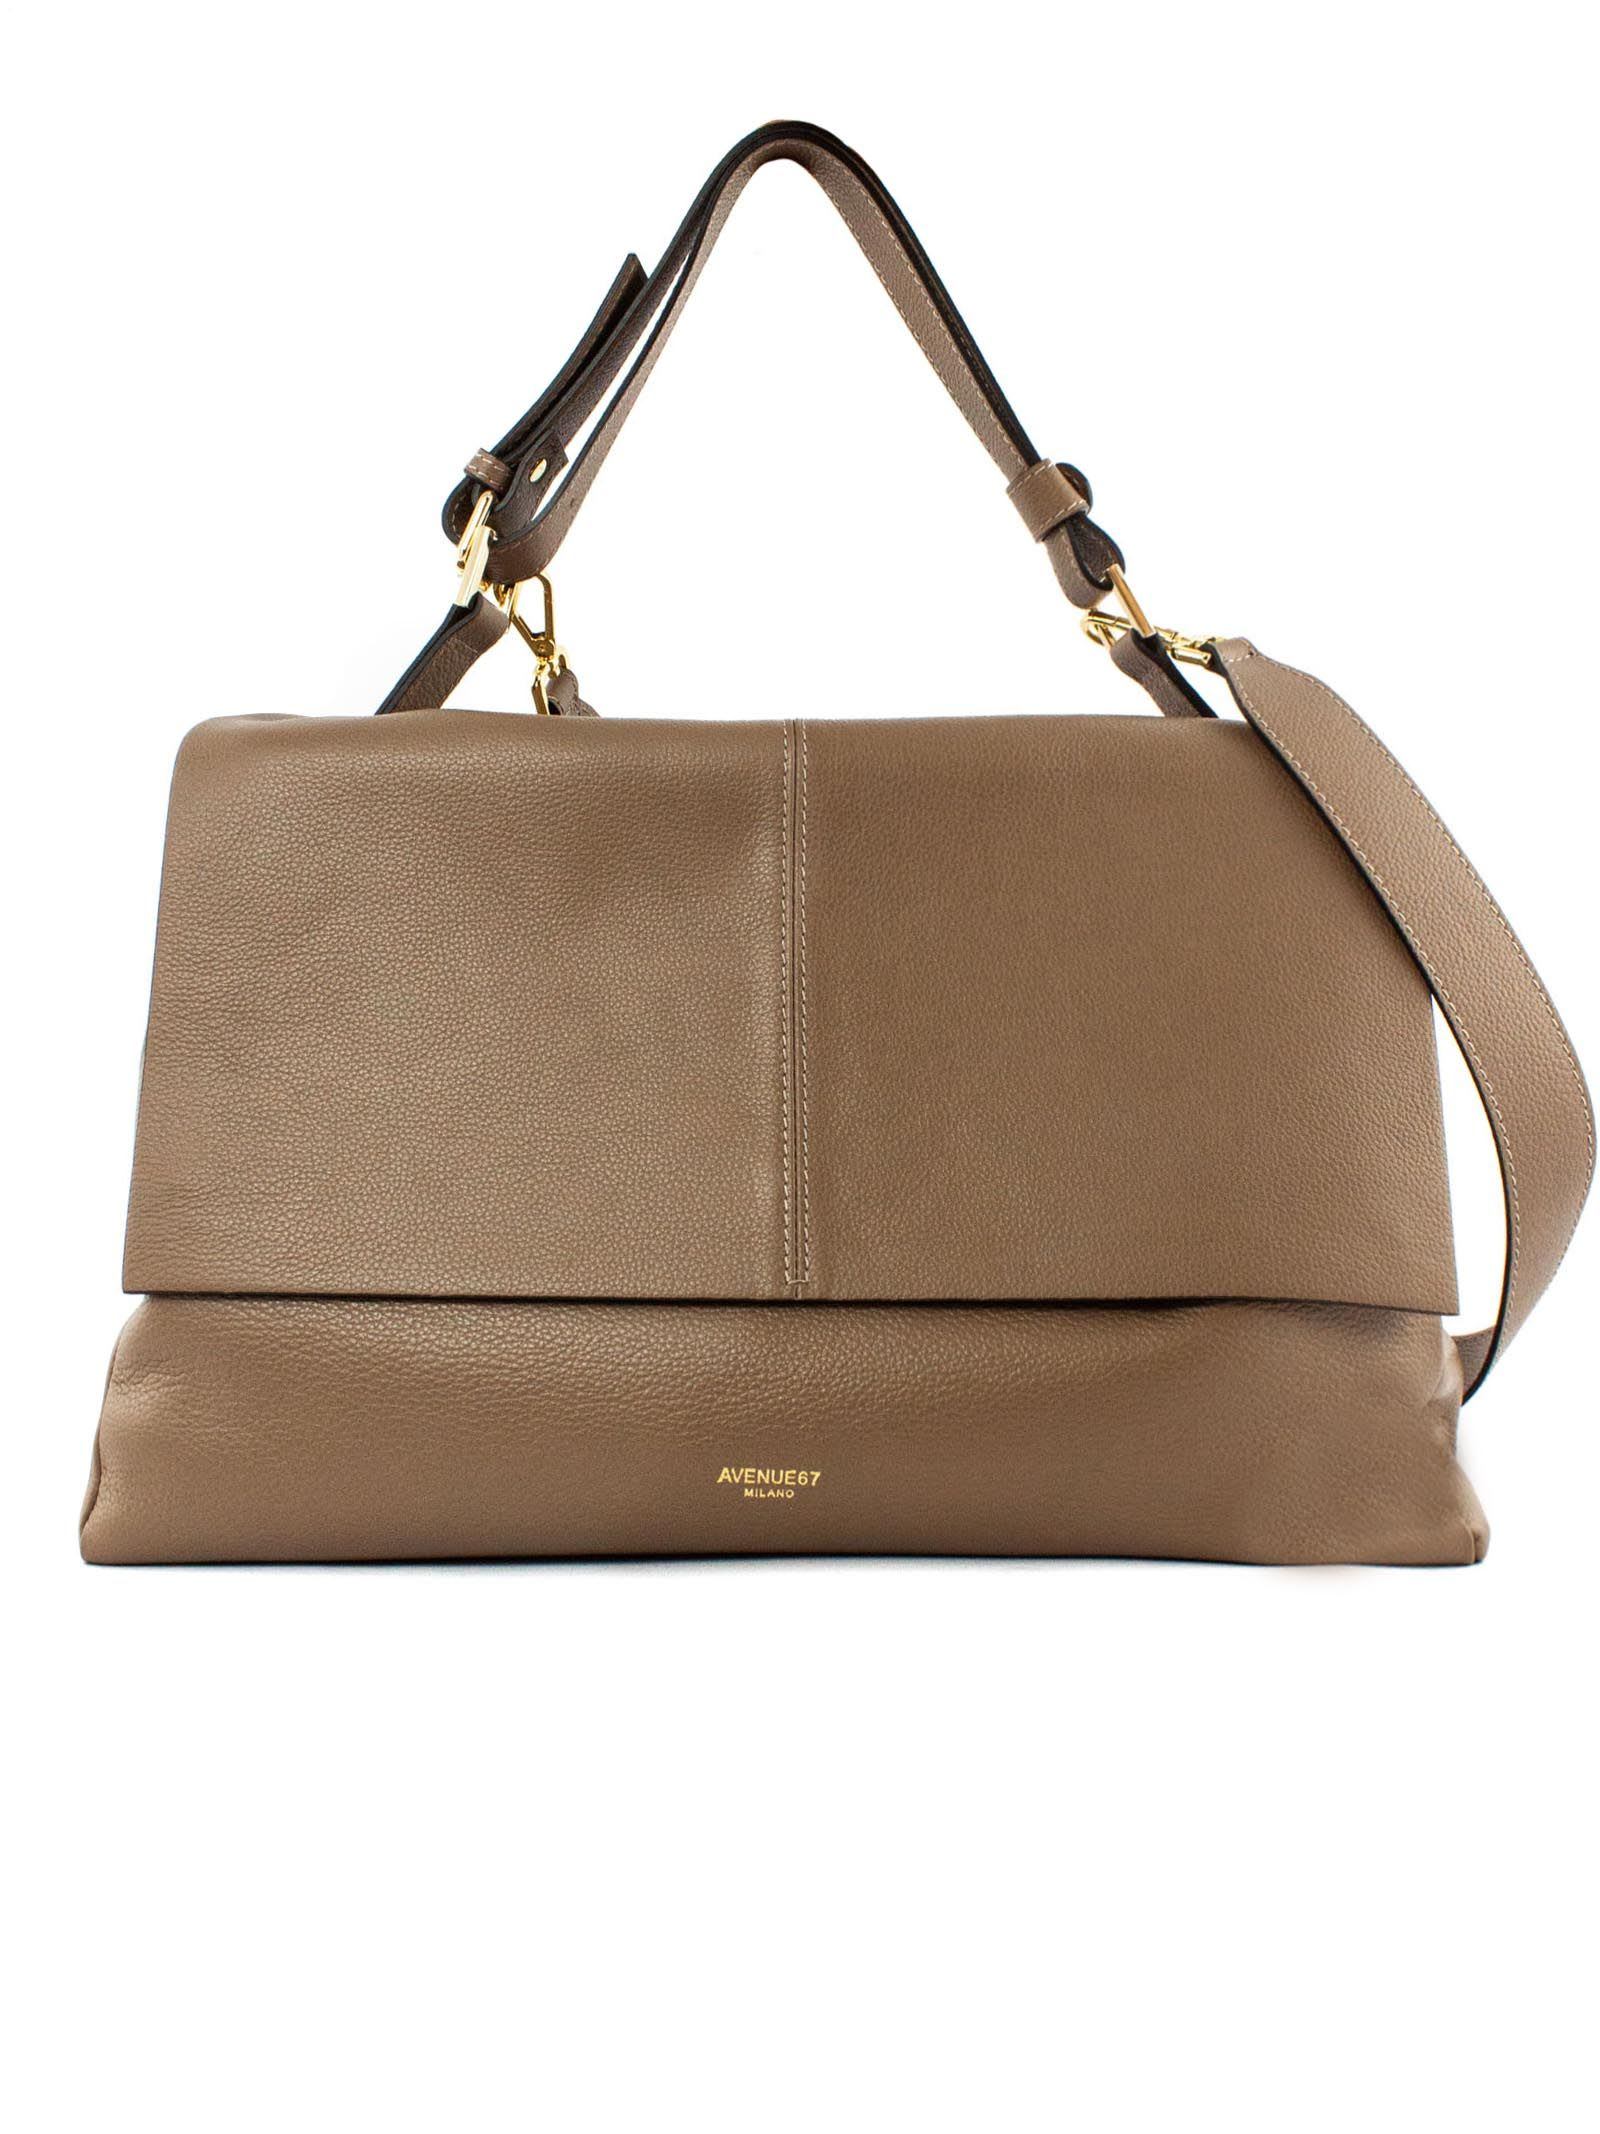 Elettra Giant Bag In Soft Brown Leather